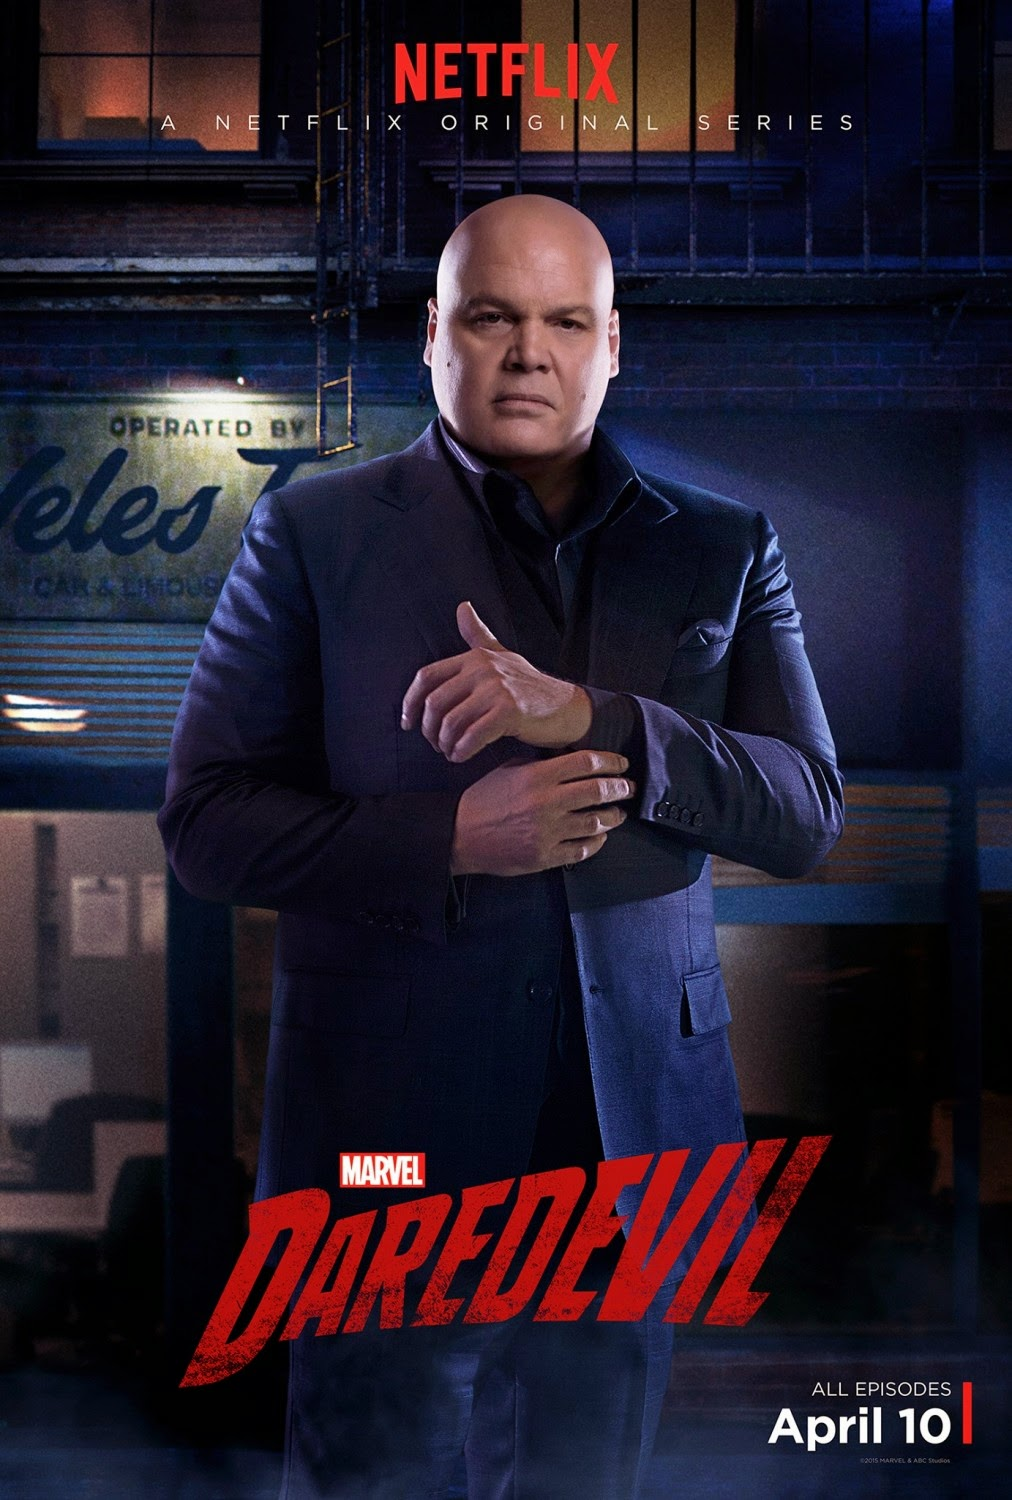 Marvel's Daredevil Character Television Poster Set - Vincent D'Onofrio as Wilson Fisk